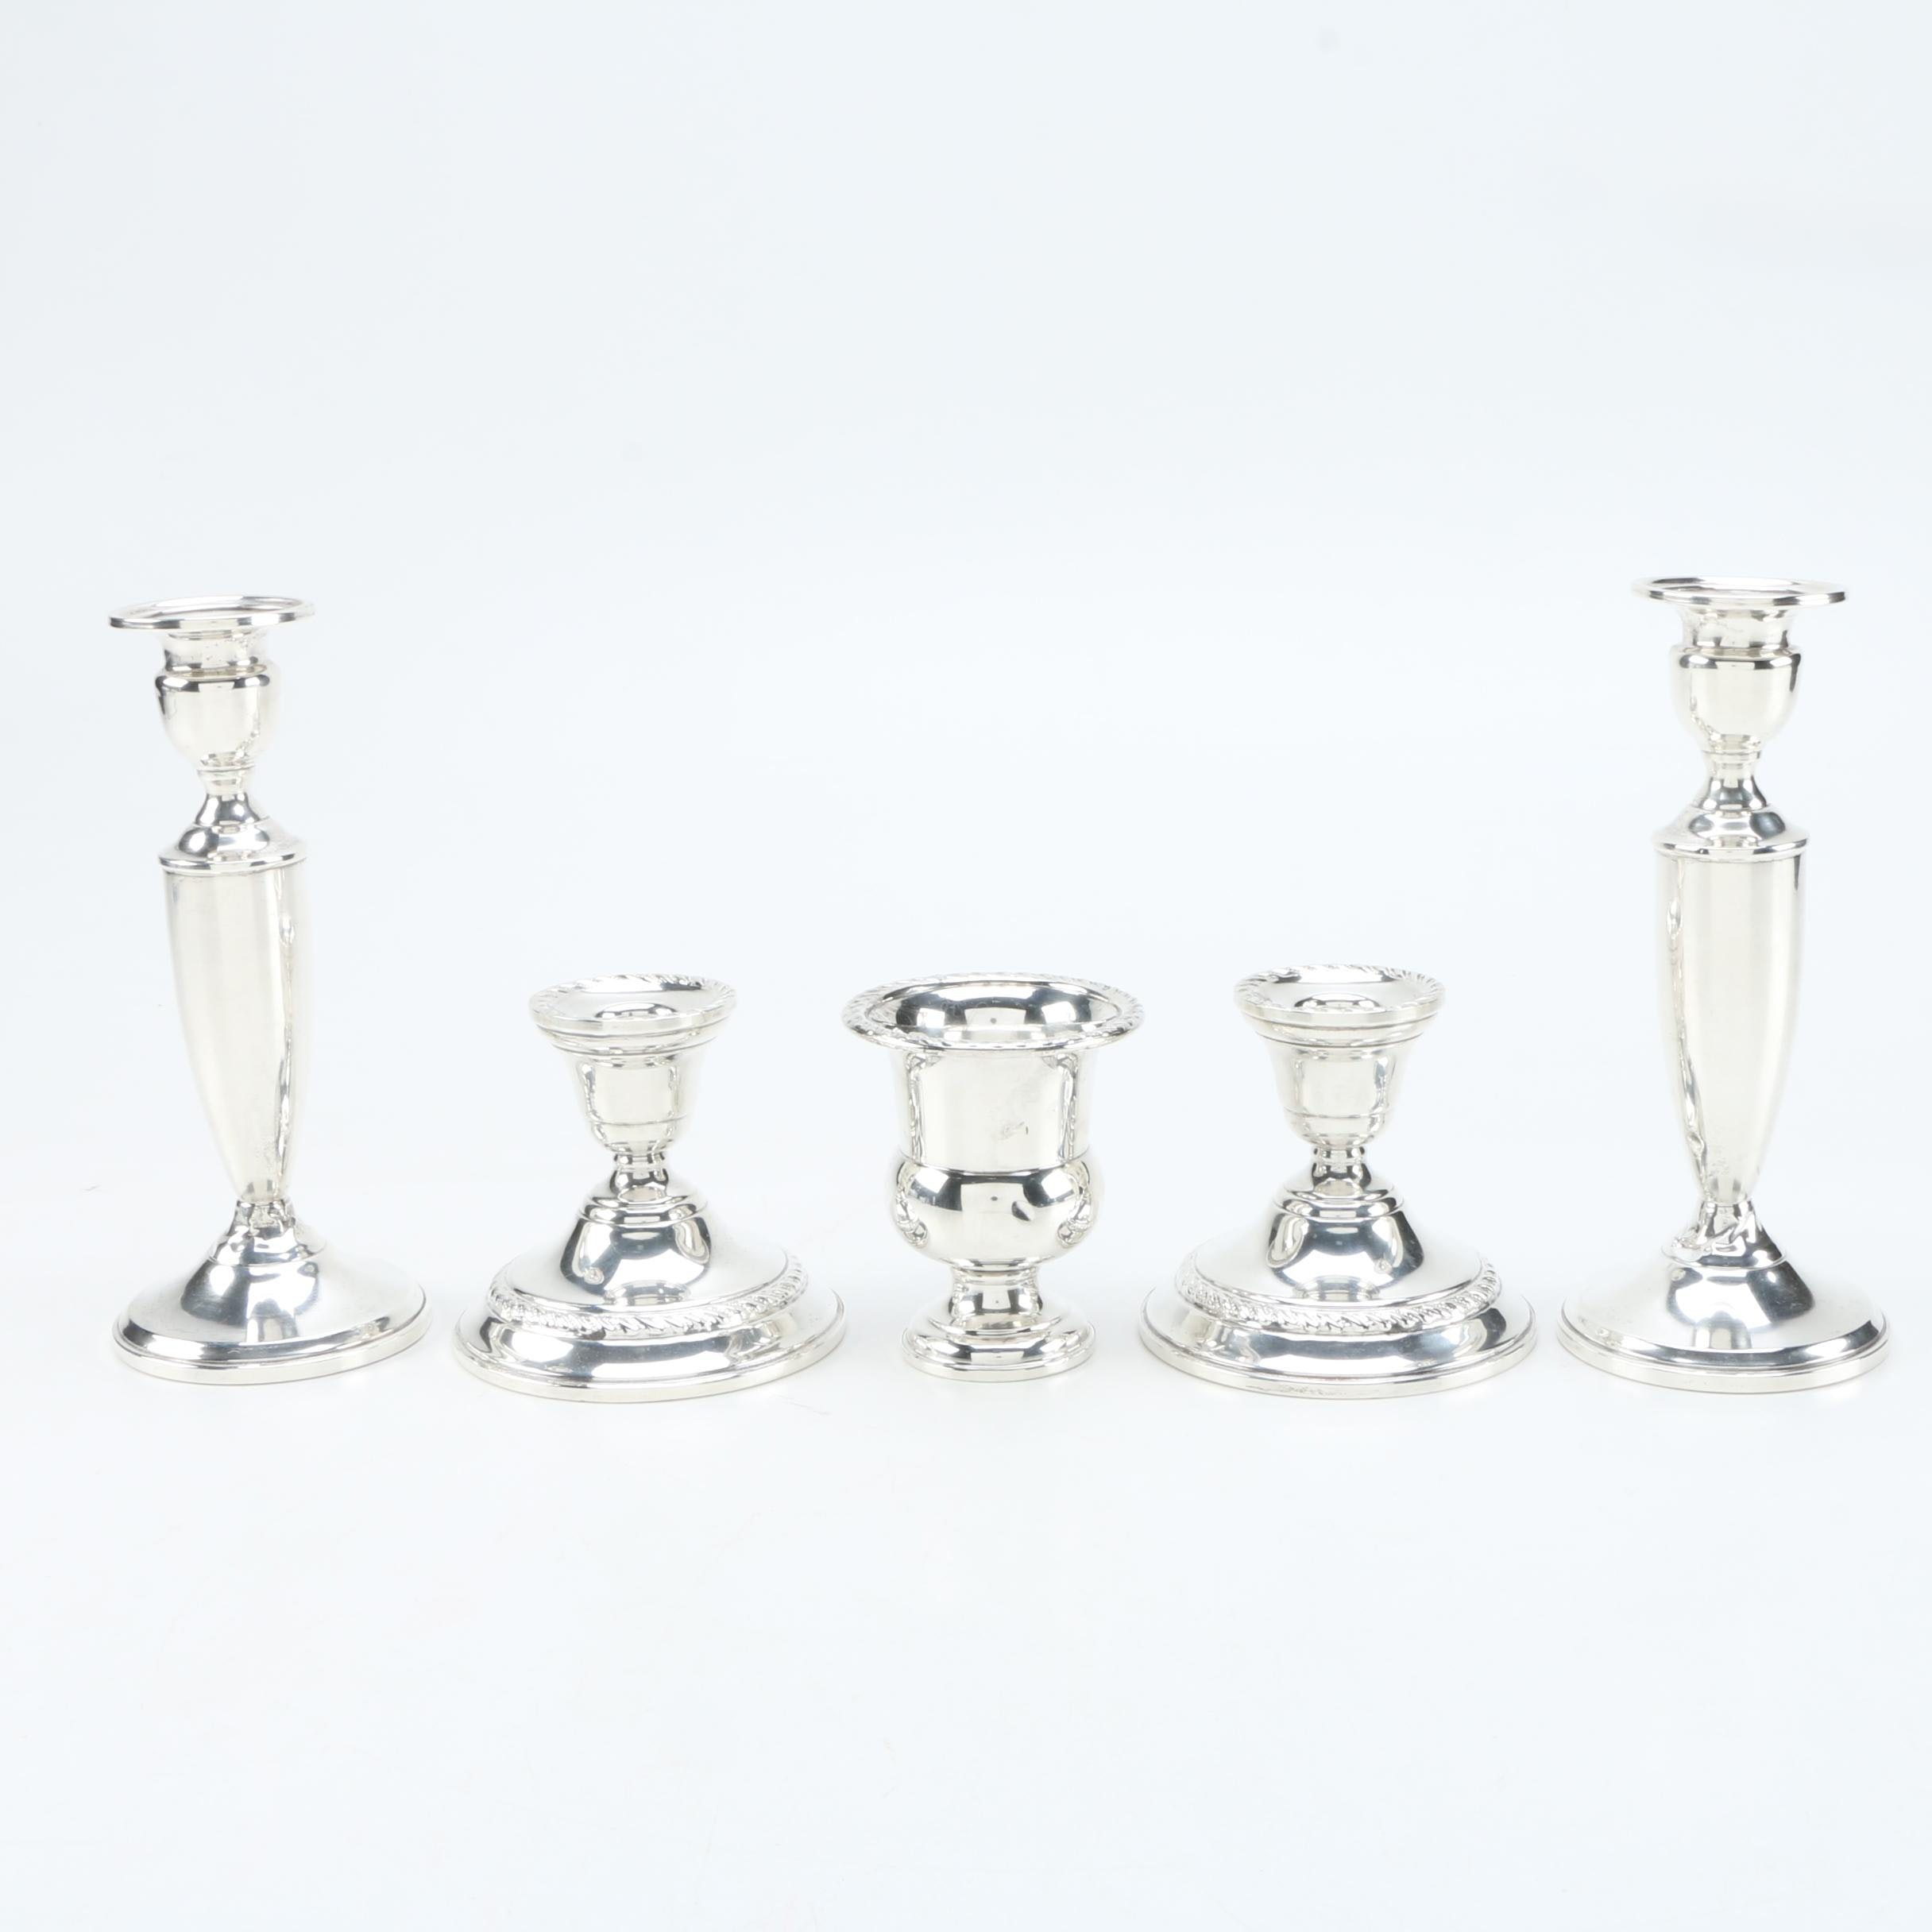 Mueck-Carey Co. and Preisner Weighted Sterling Candleholders